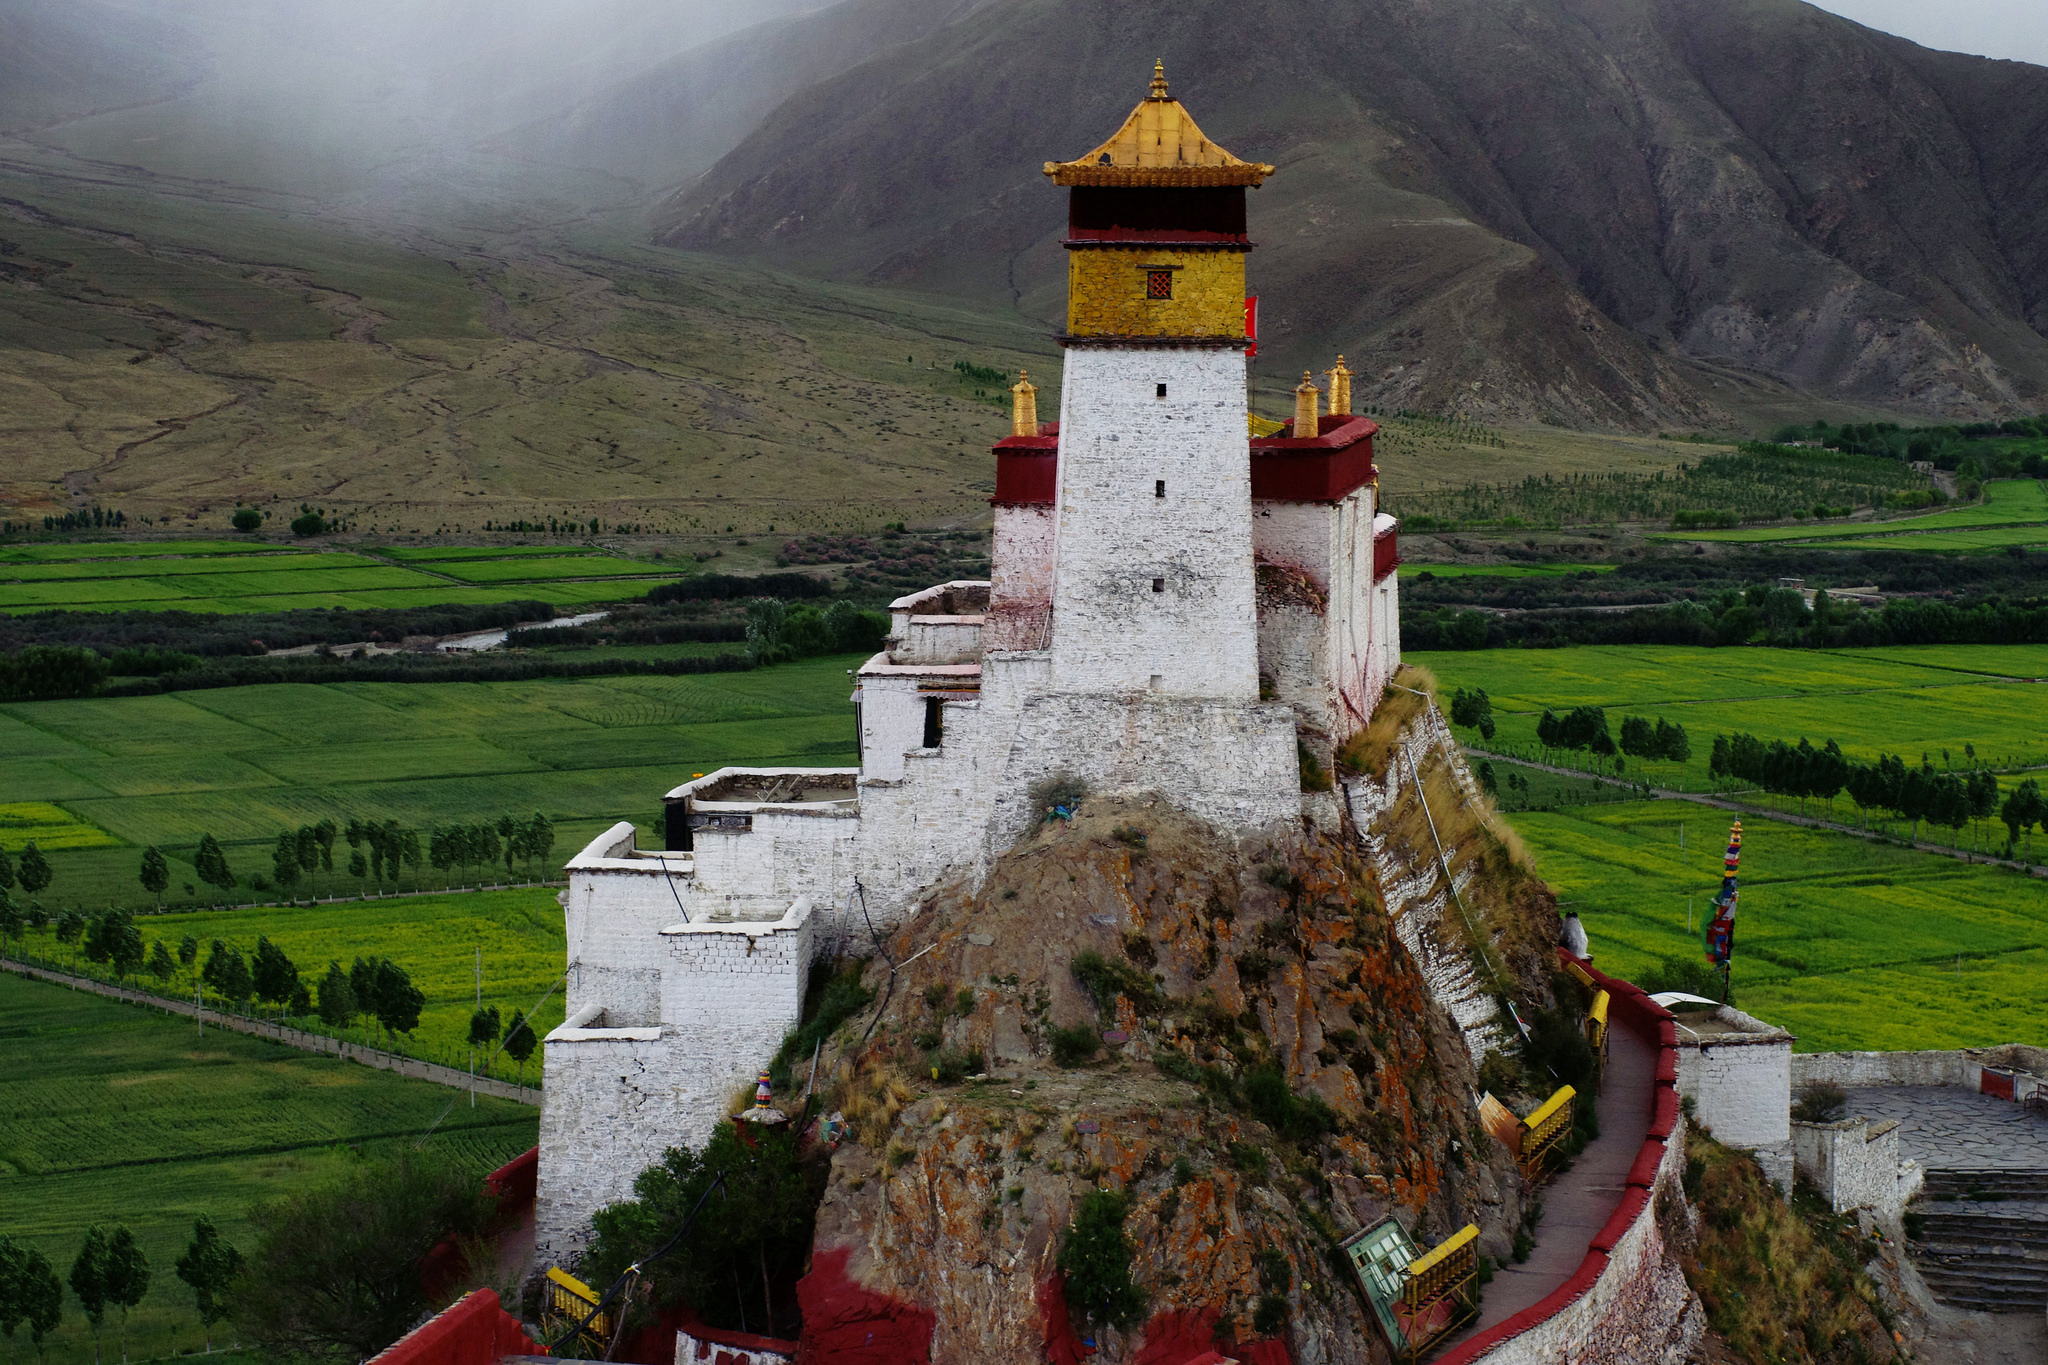 Tibet Travel 6 days : Lhasa Tsedang Tour